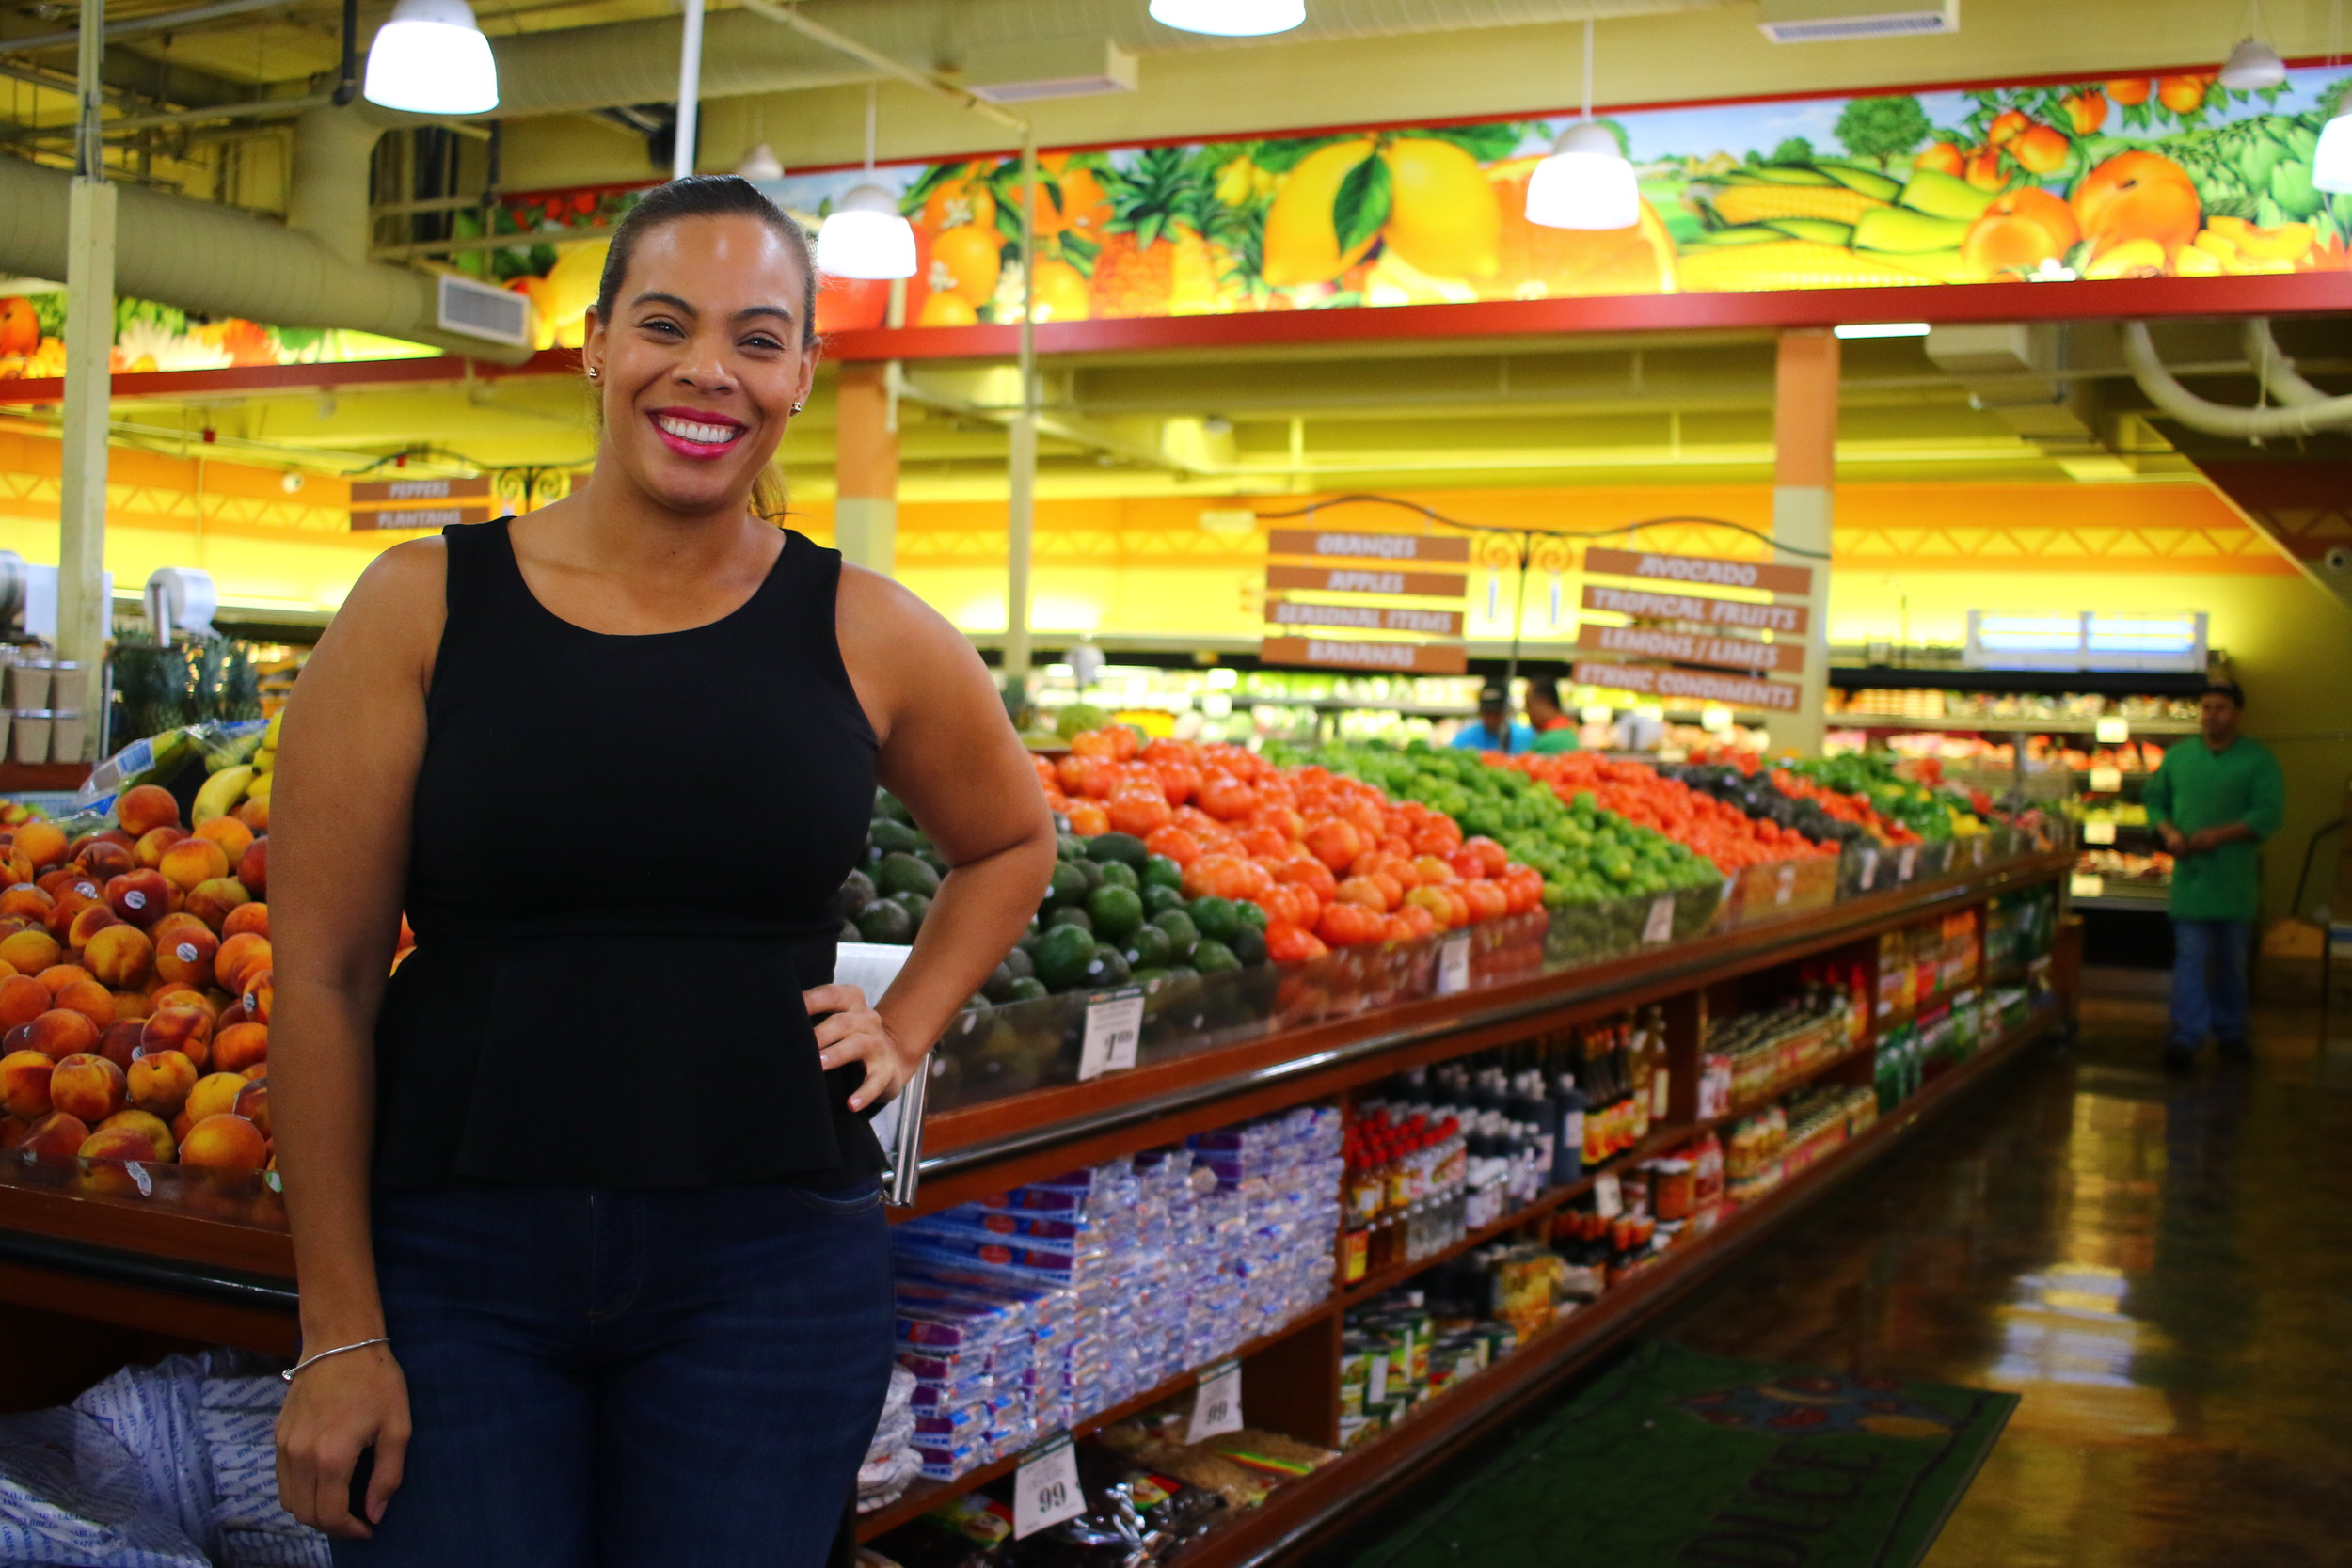 Jenny Jorge, vice president of operations for the Compare Foods in Freeport, said her uncle, a native of the Dominican Republic, started the family in the supermarket business.